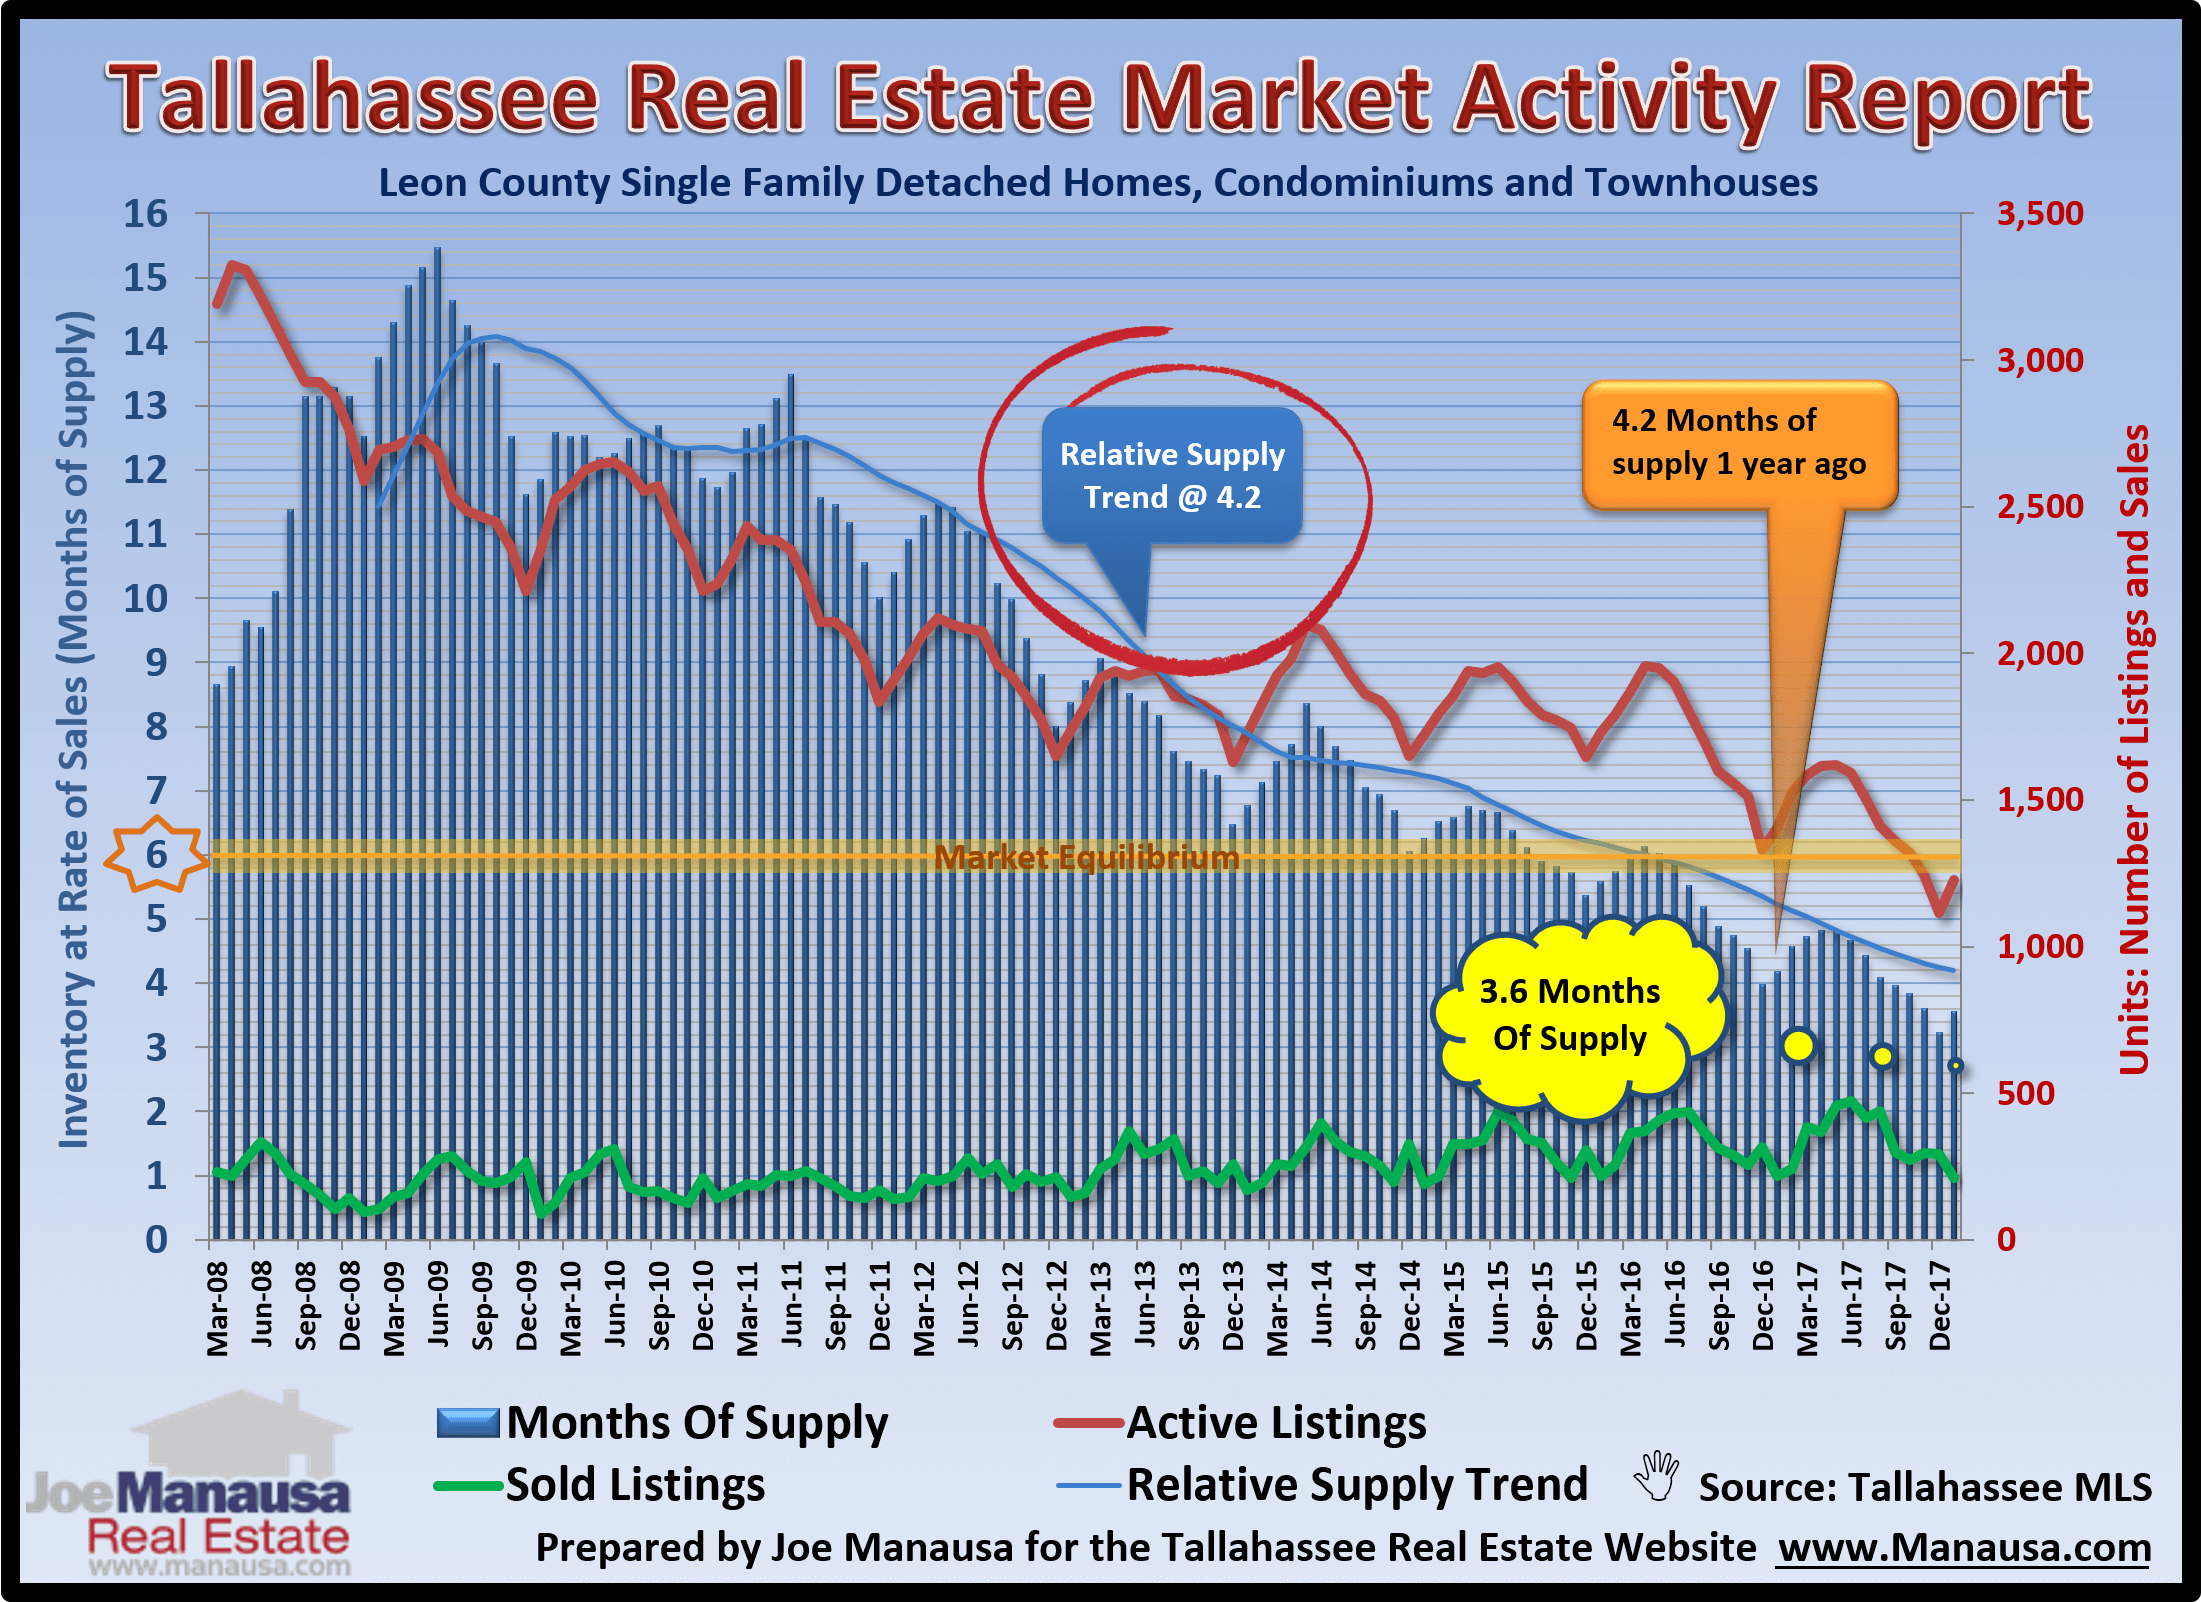 the graph that I examine most often of the hundreds that I create to monitor the Tallahassee real estate market